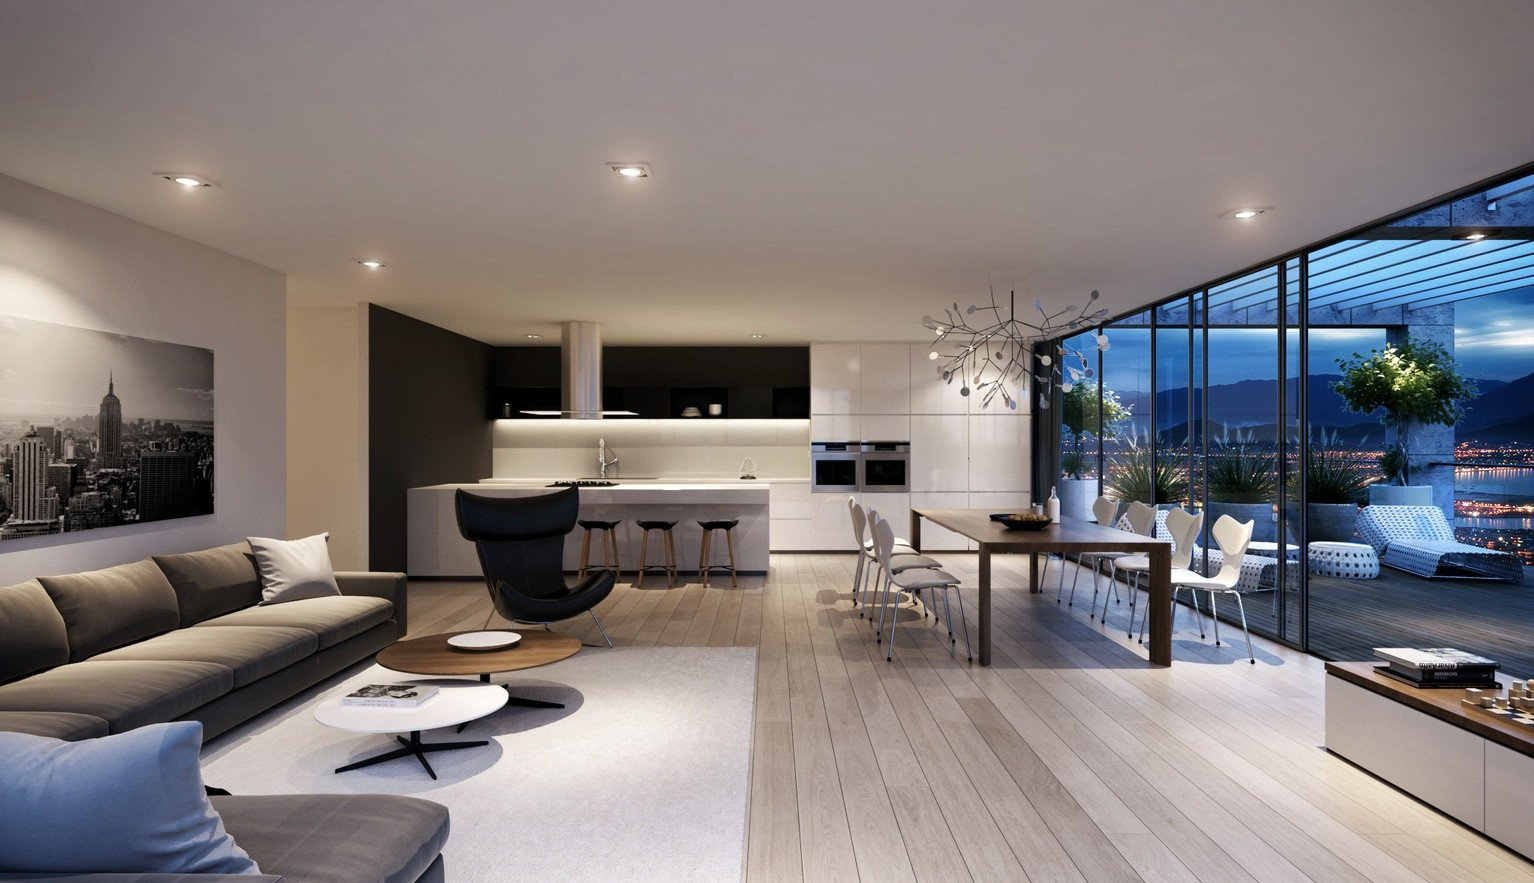 Living Room Ideas Contemporary 11 Awesome and Trendy Modern Living Room Design Ideas